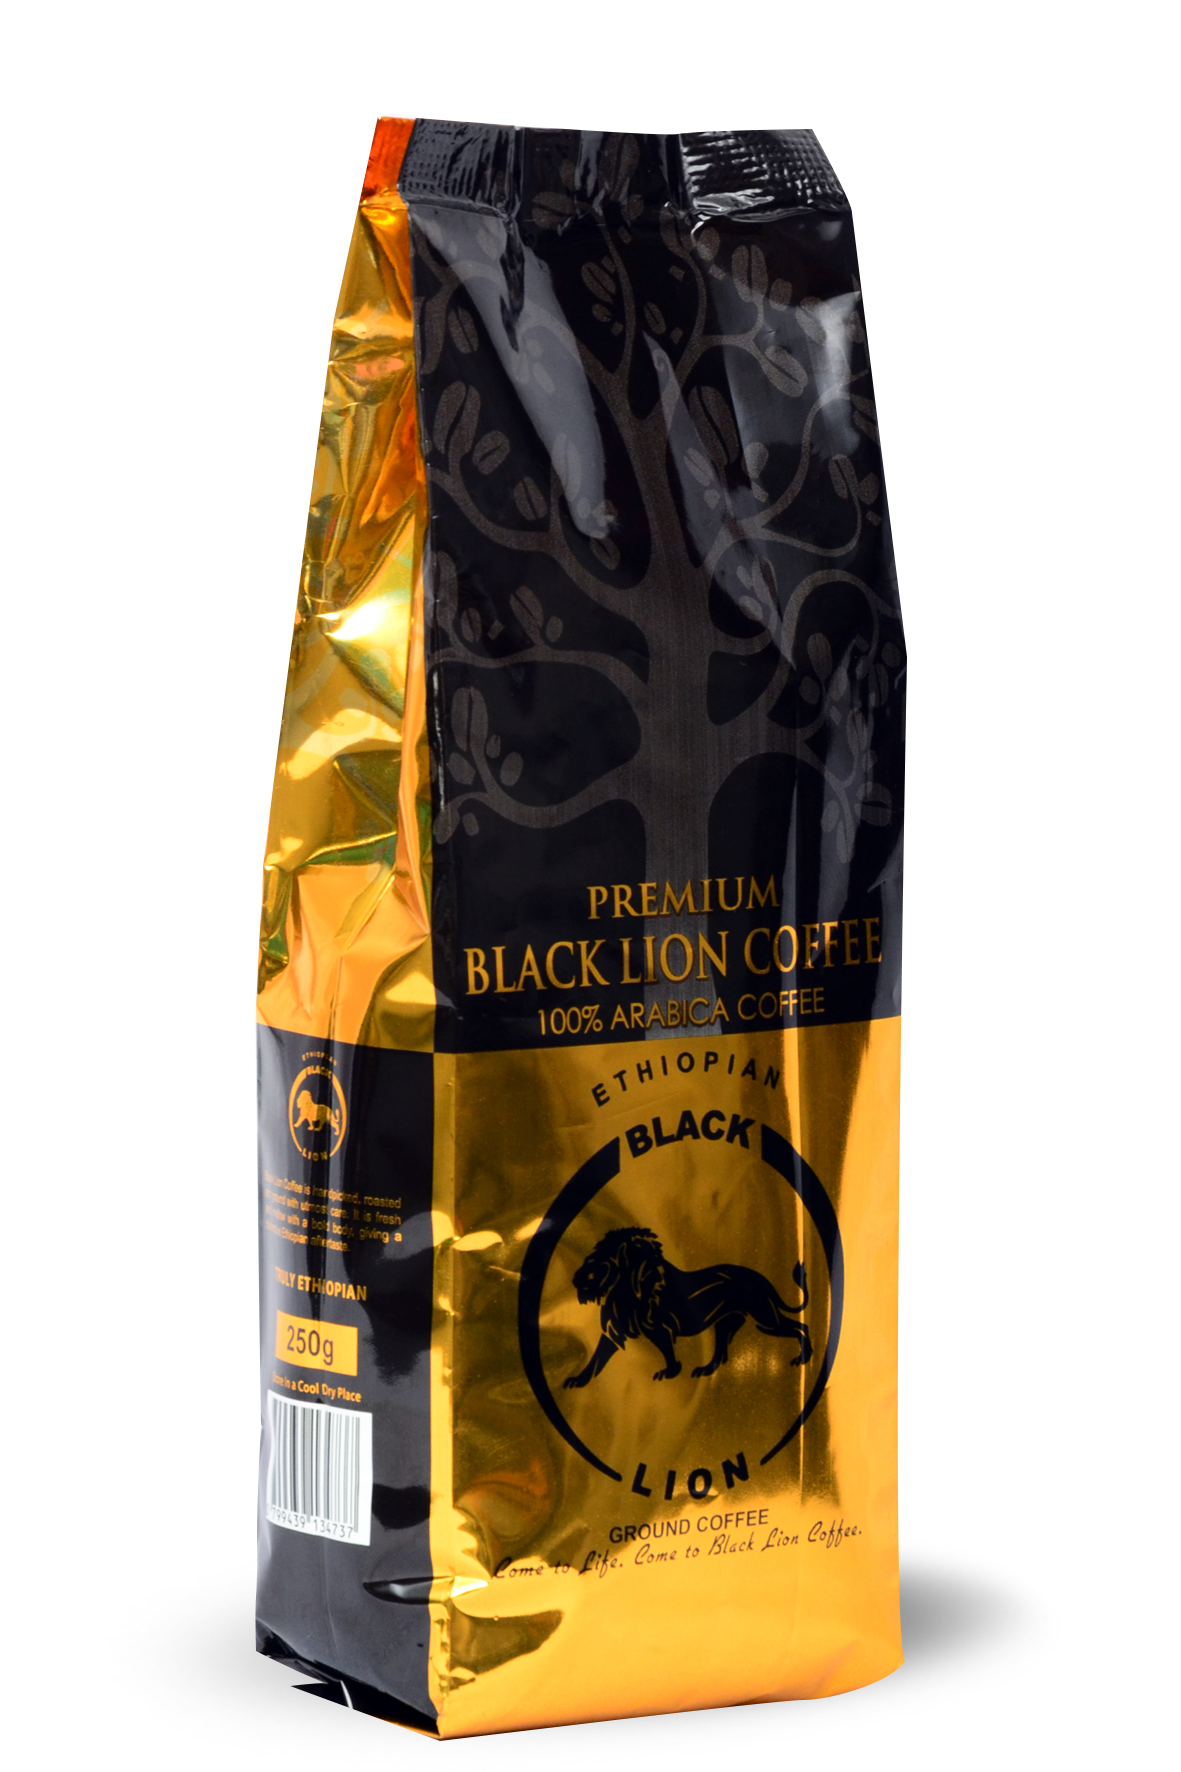 250gm (8.18Oz) Ground Coffee Black Lion Premium Coffee Image